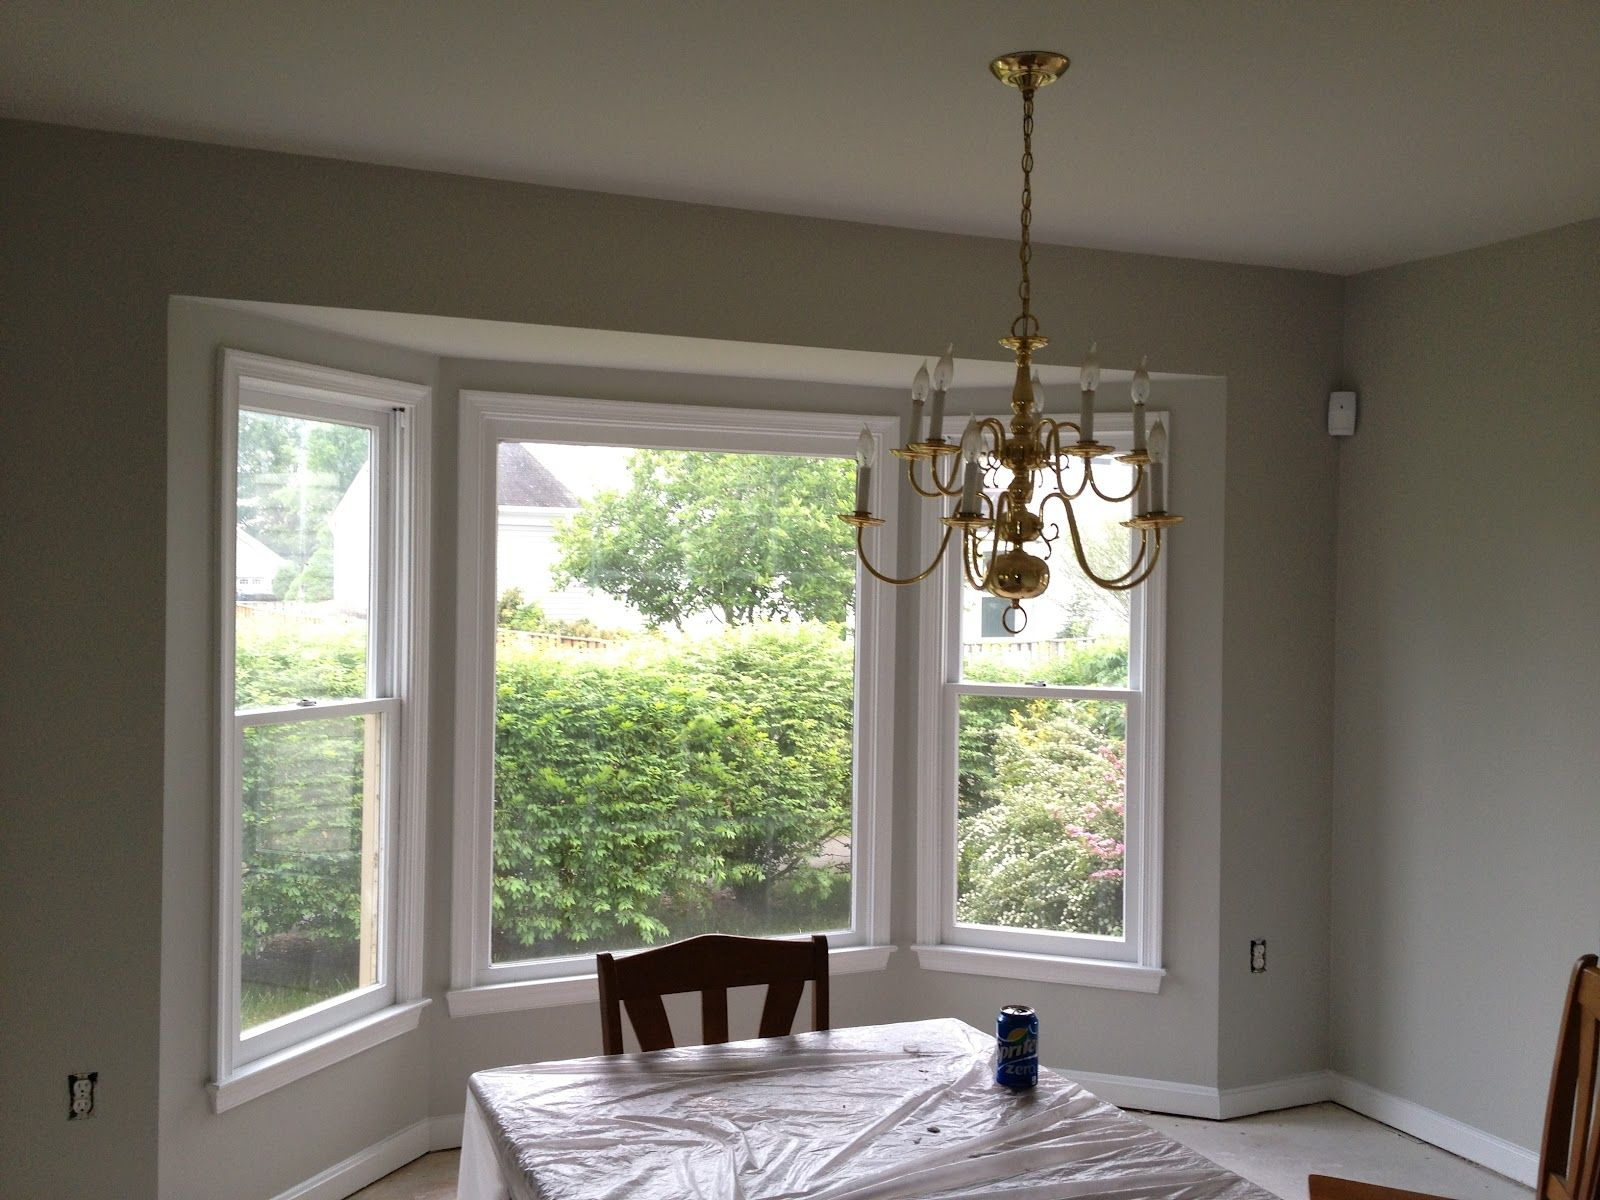 aloof grey sherwin williams paint colors painting sherwin williams gray painting inspiration. Black Bedroom Furniture Sets. Home Design Ideas